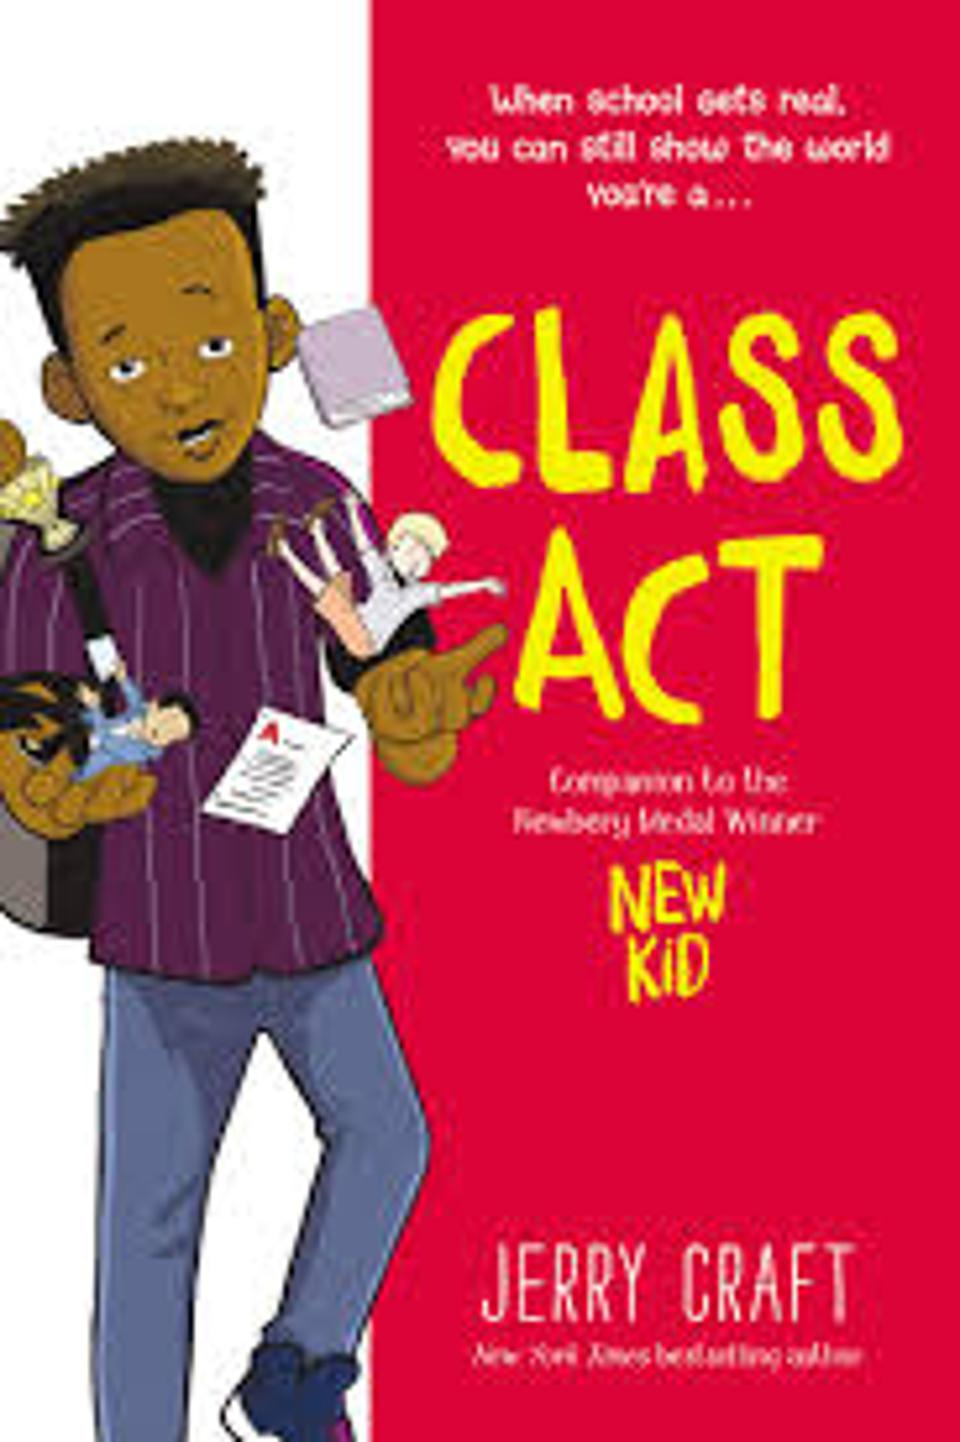 Class Act by Jerry Craft cover teen YA graphic novel bestseller 2020